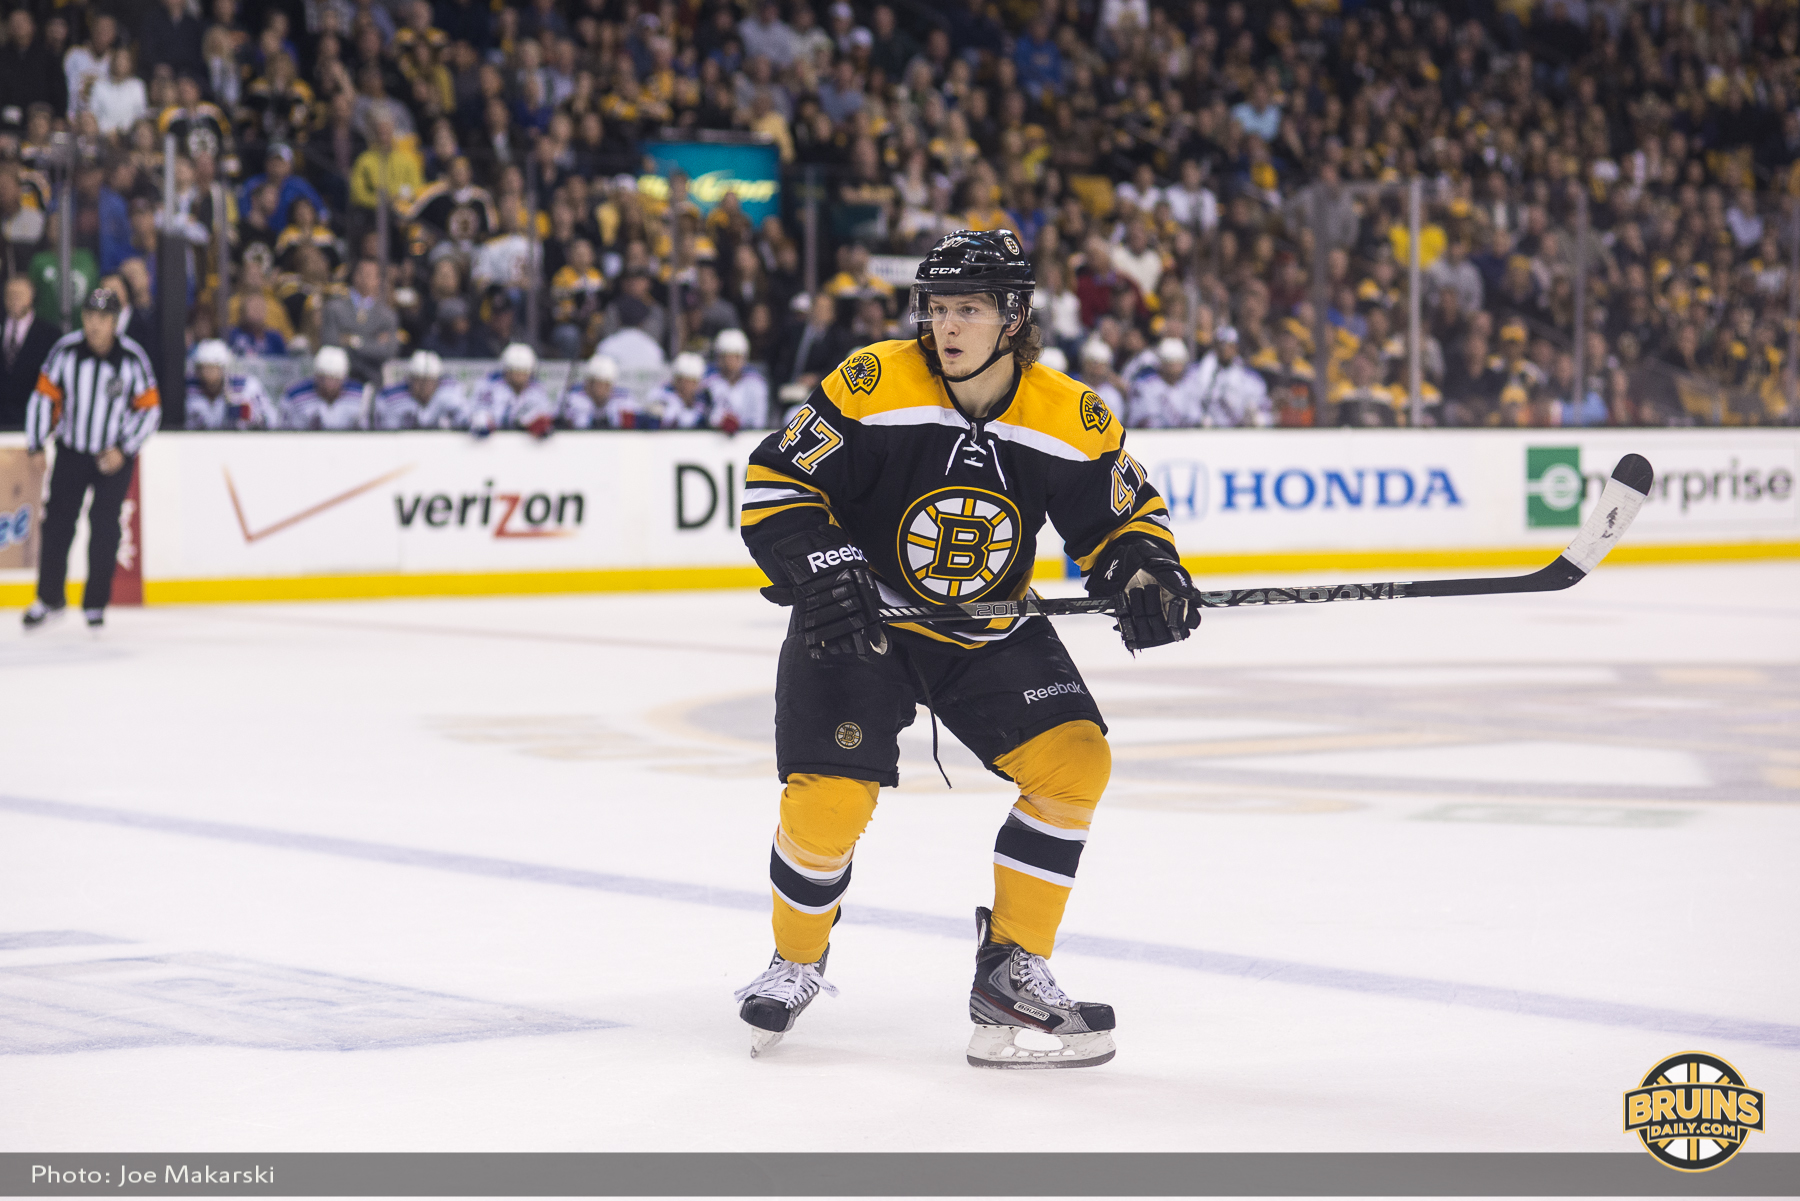 Torey Krug Torey Krug contributes as unsung hero Bruins Daily